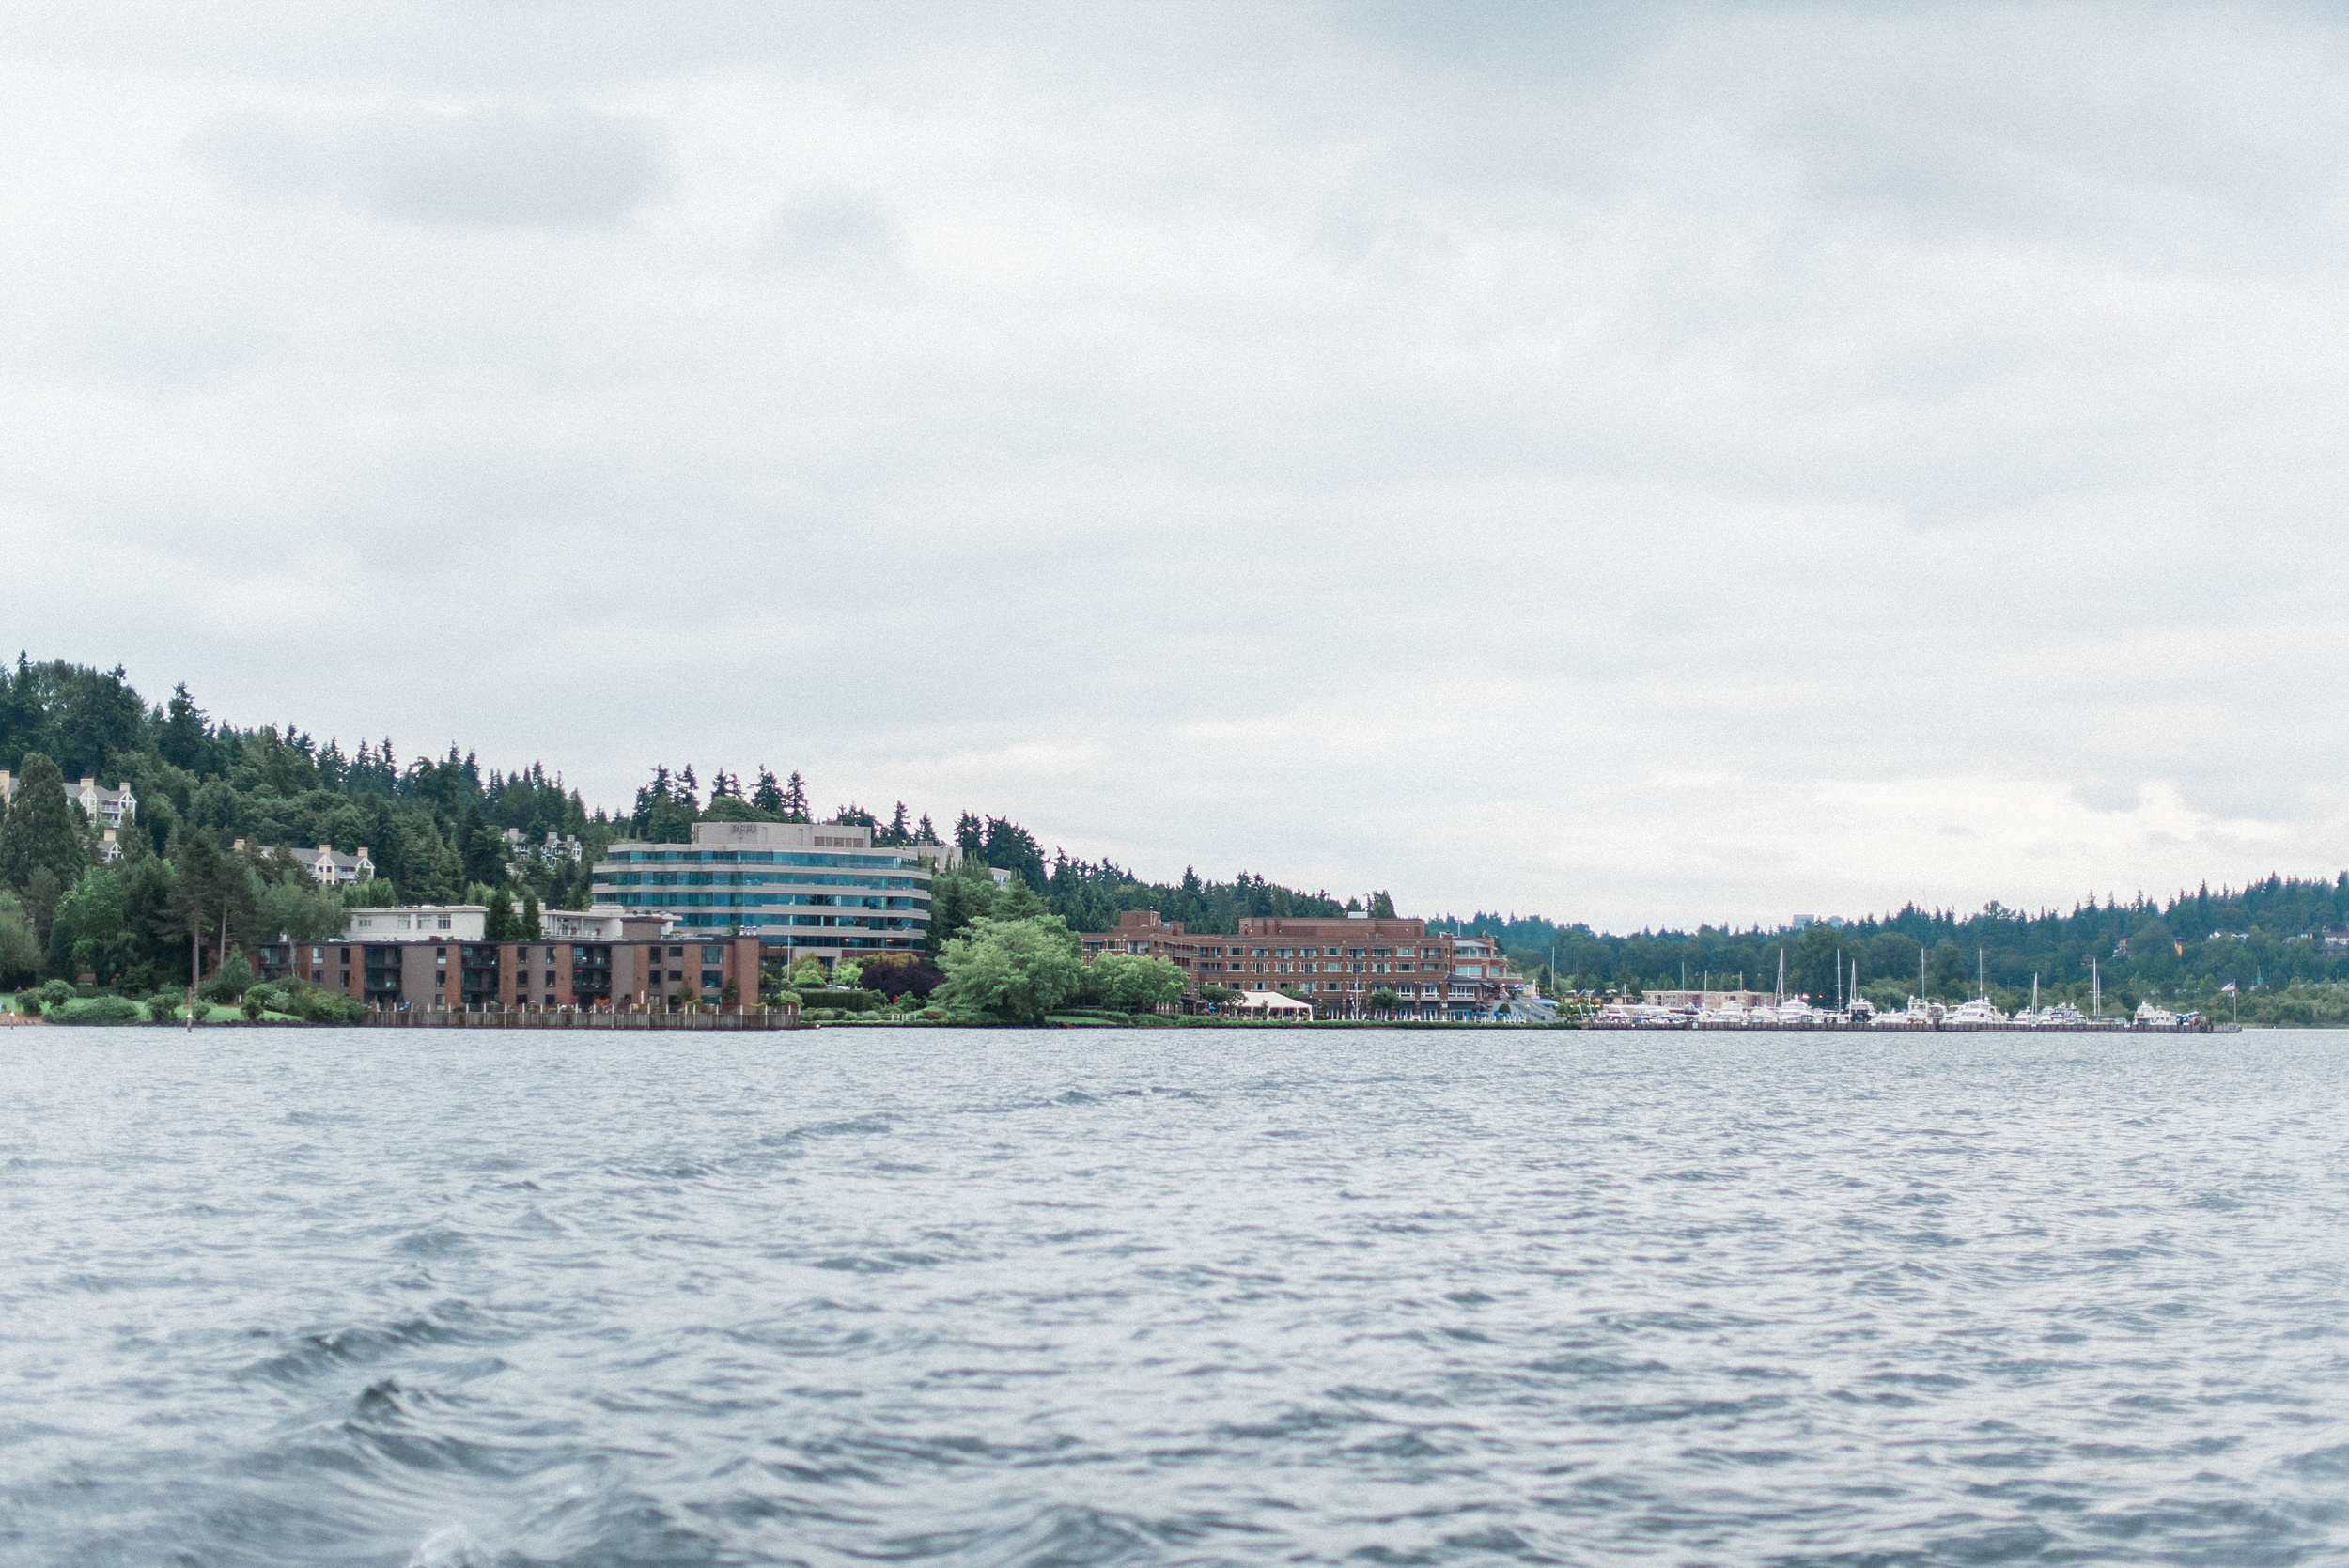 Woodmark Hotel Wedding venue photos, Seattle Wedding Photography